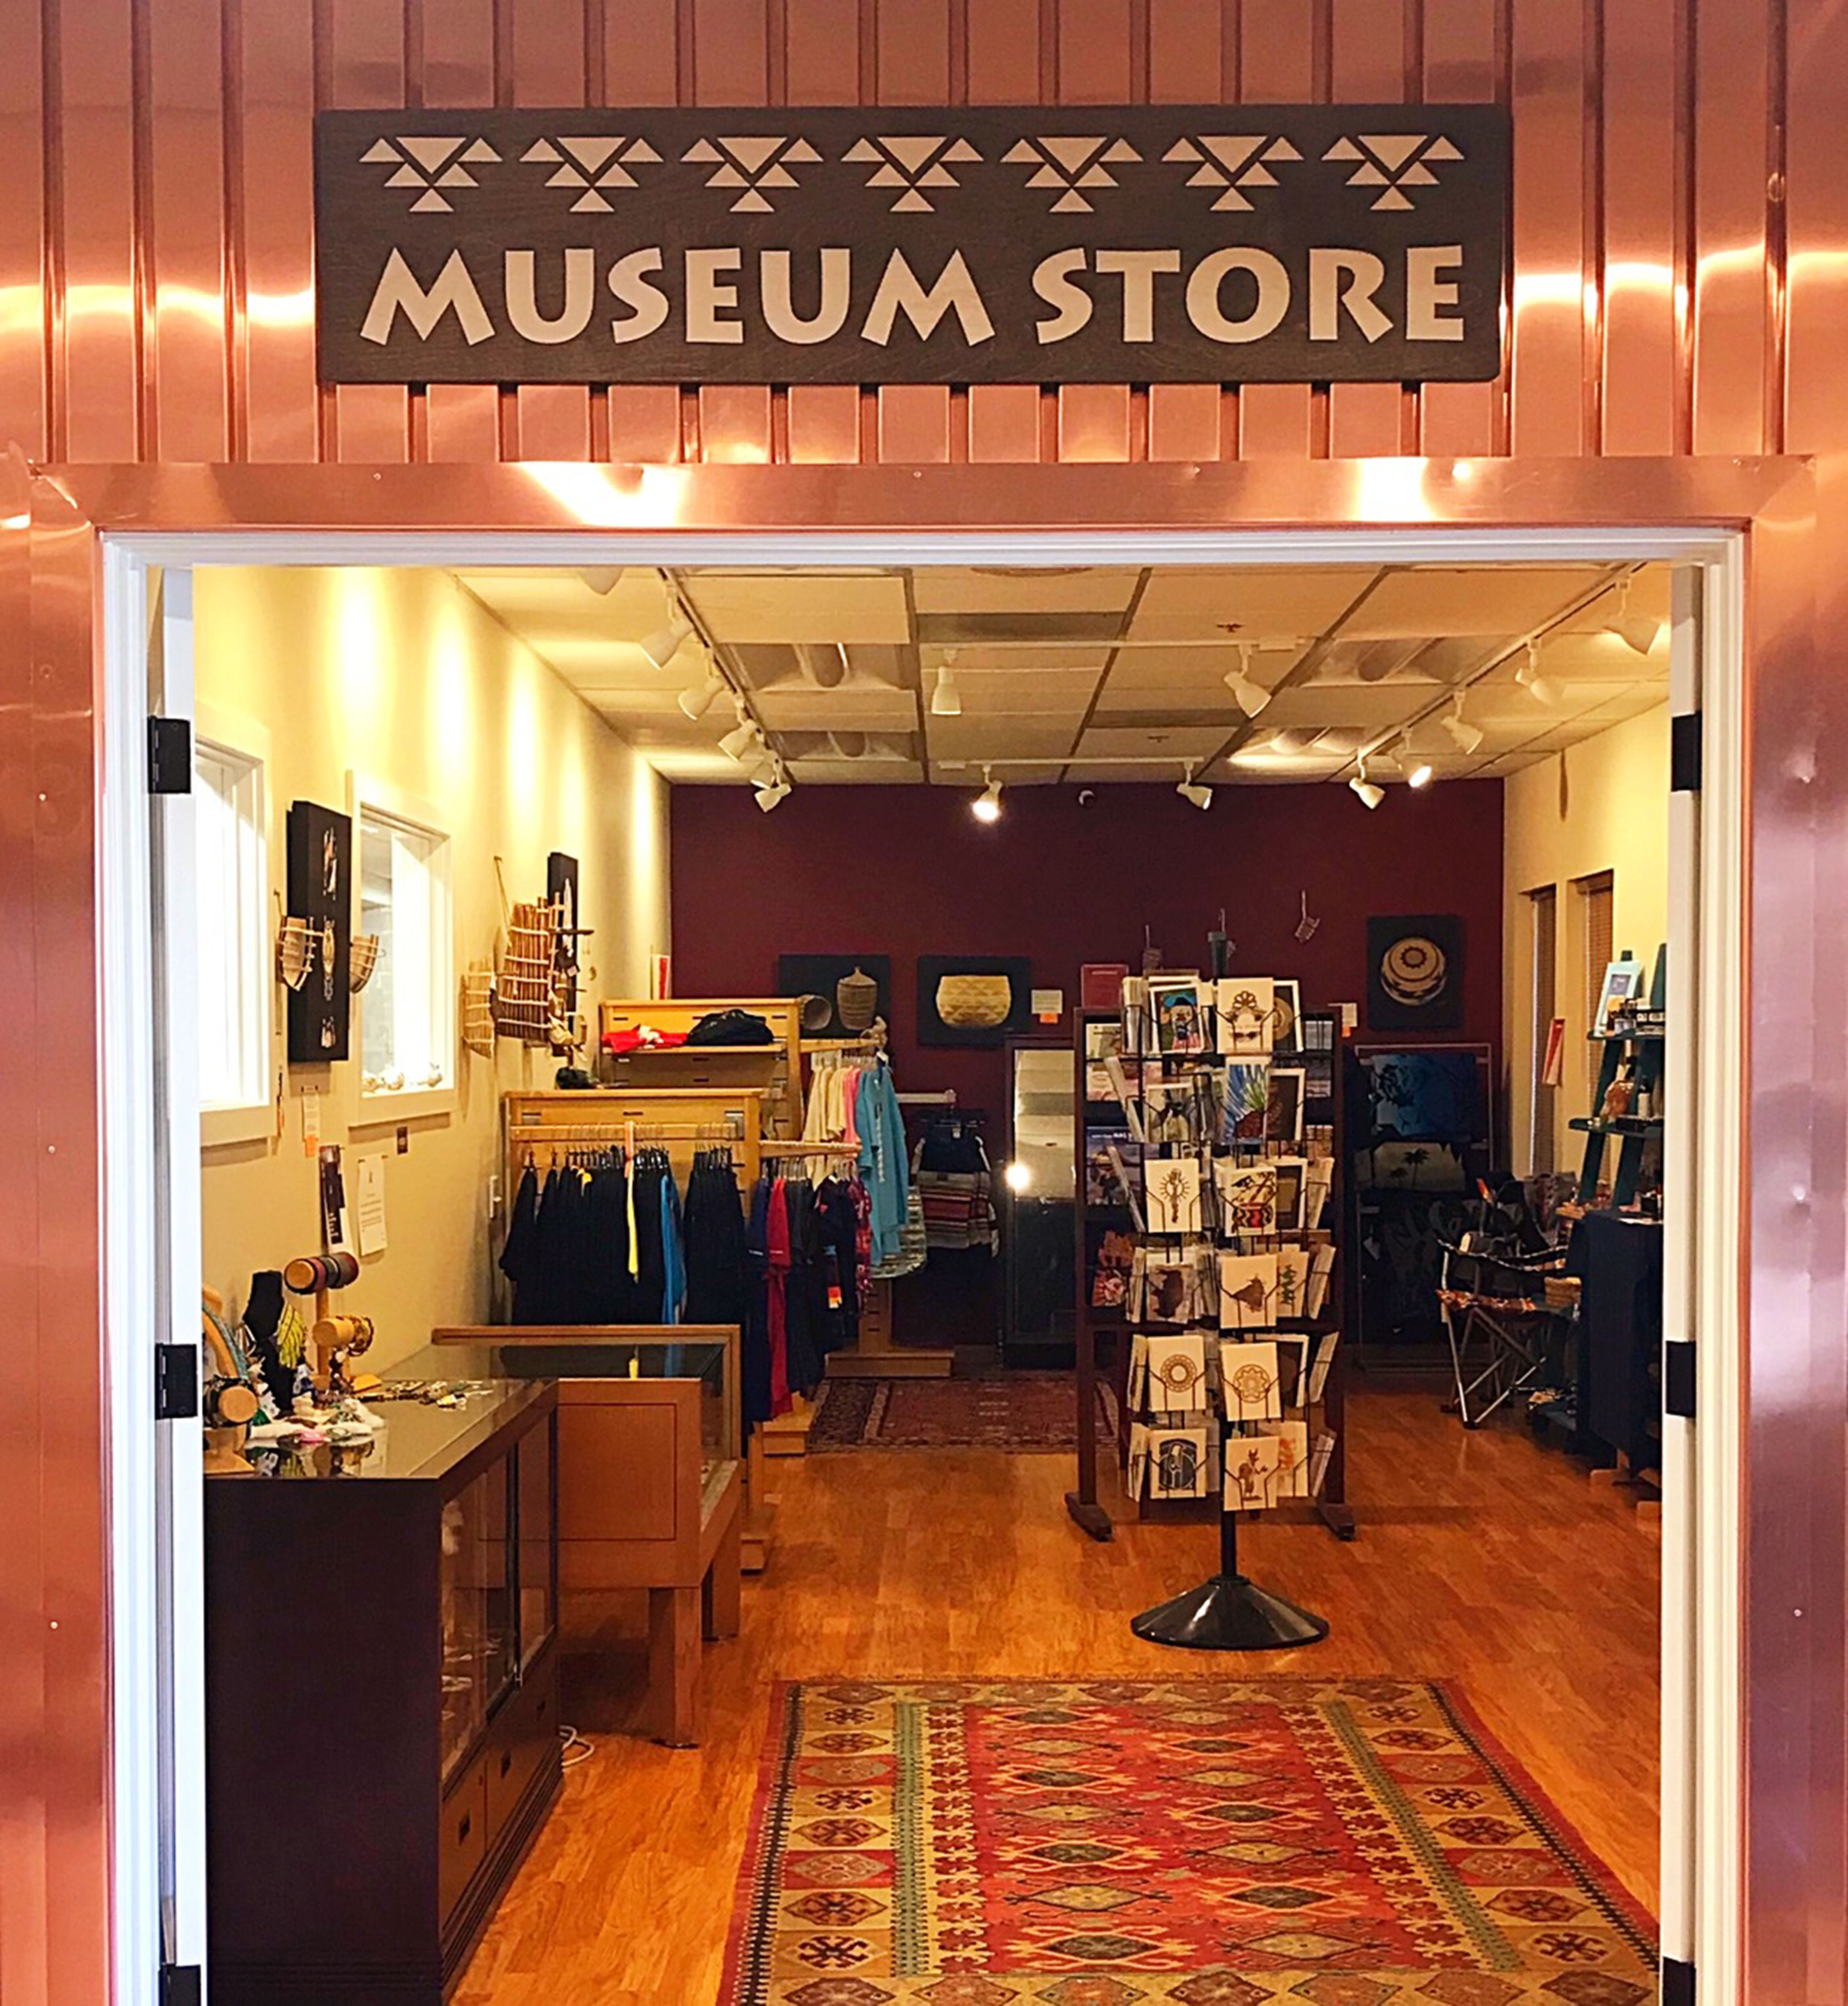 Enter our Museum Store